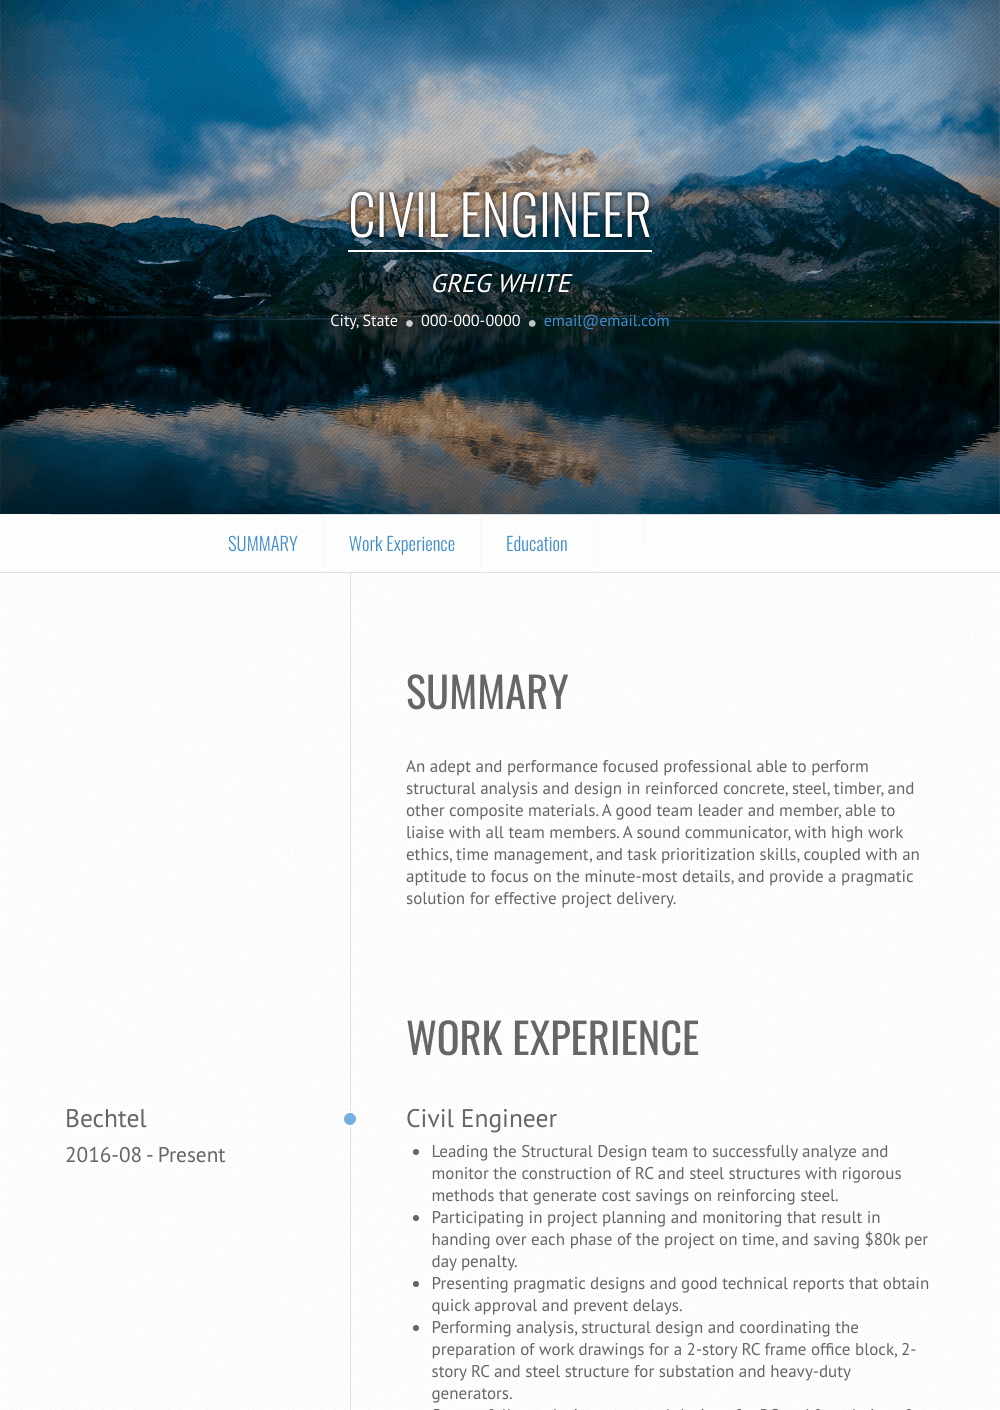 Civil Engineer Resume Samples Templates Visualcv